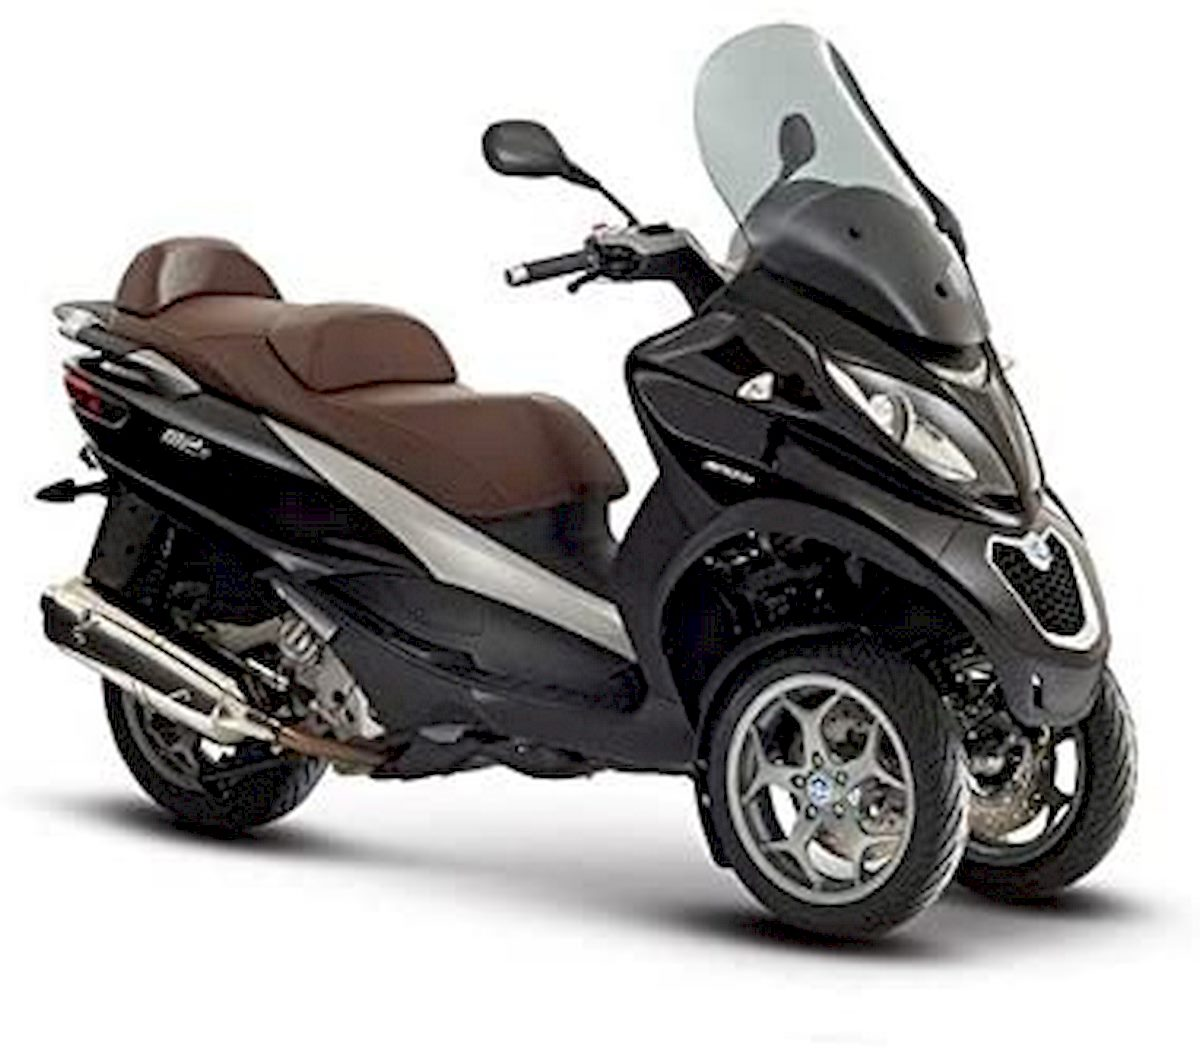 Image of PIAGGIO MP3 500IE BUSINESS